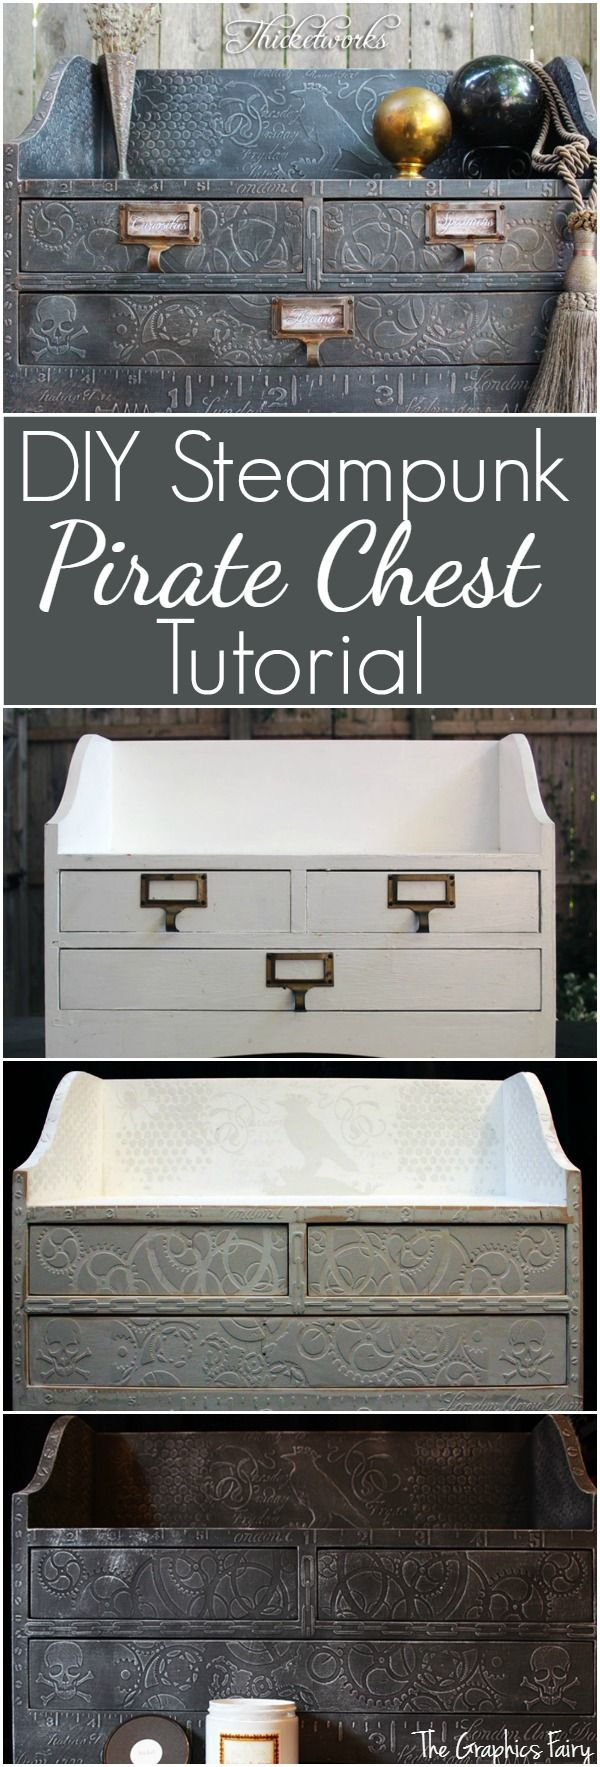 DIY Steampunk Pirate Chest Tutorial - The Graphics Fairy